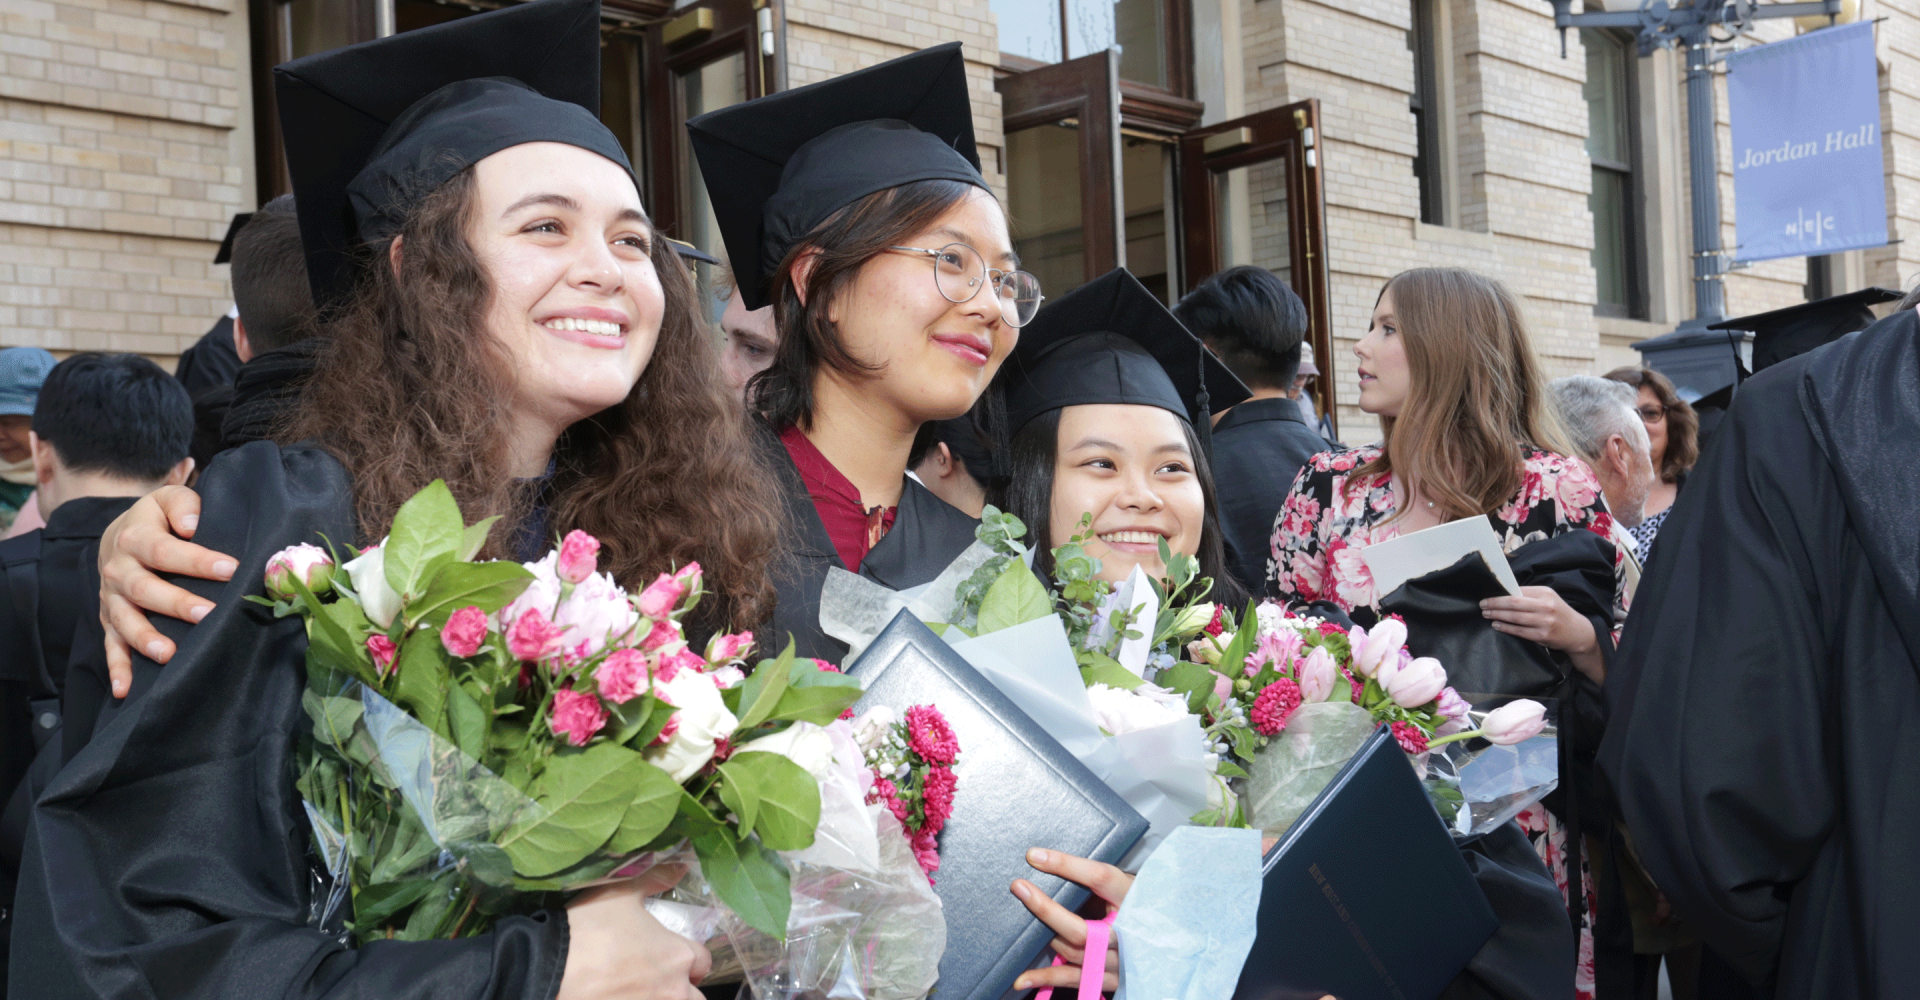 Students smile while wearing caps and gowns while holding bouquets in front of Jordan Hall